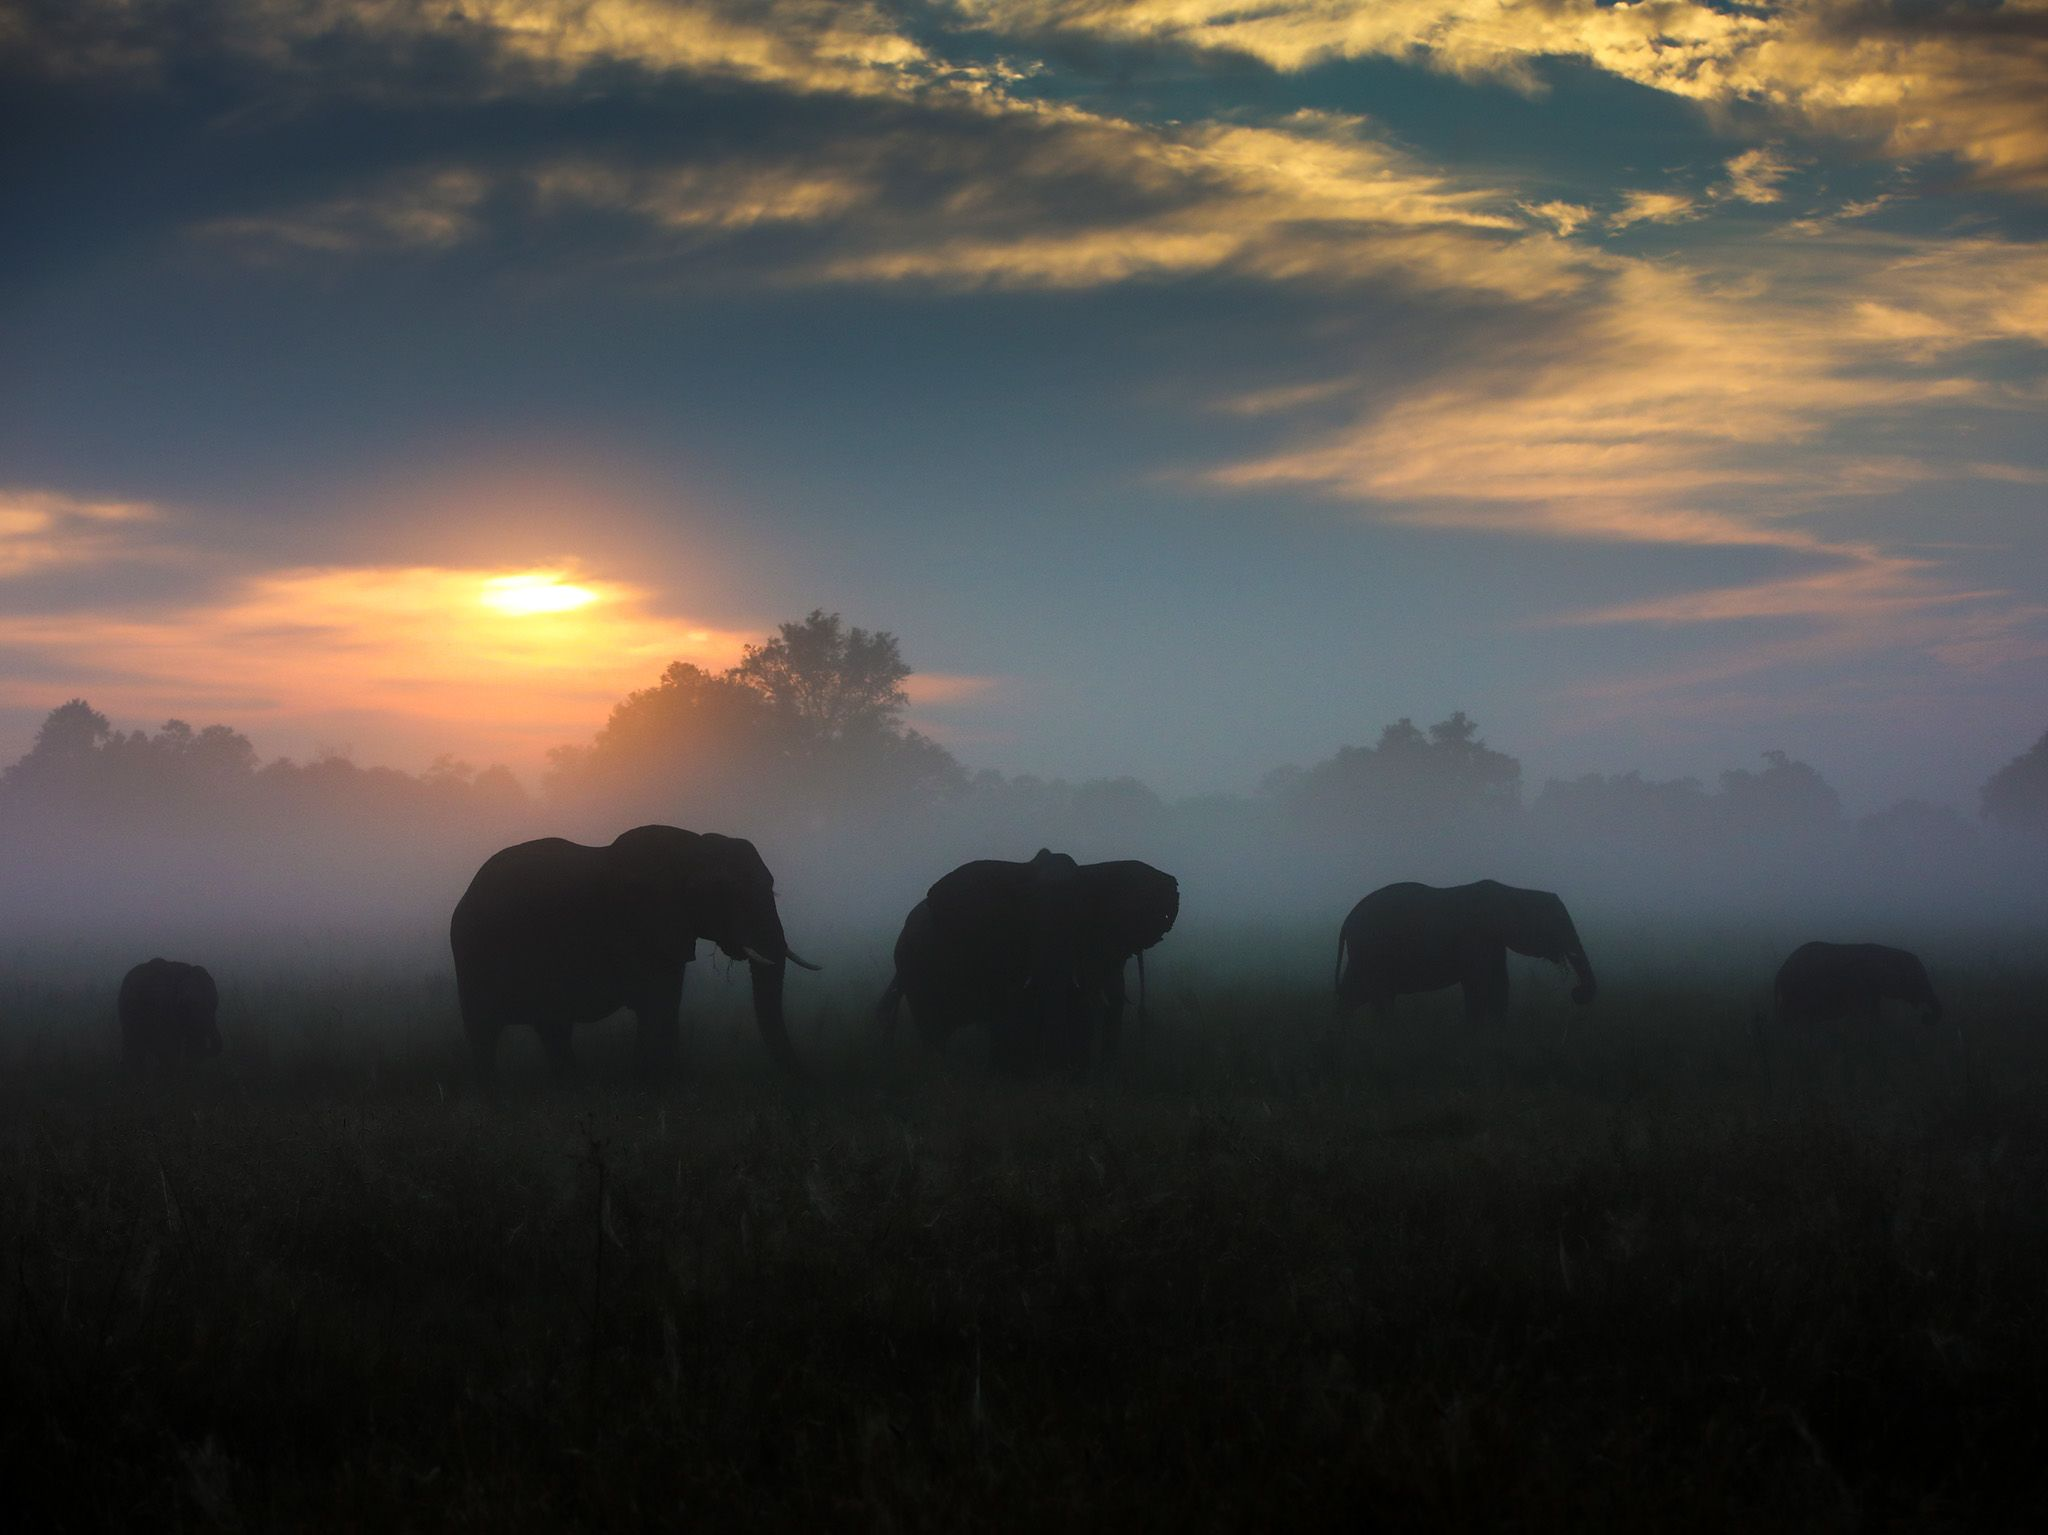 Botswana:  A herd of Elephant graze in an open floodplain surrounded by mist. The sun begins to... [Photo of the day - November 2018]